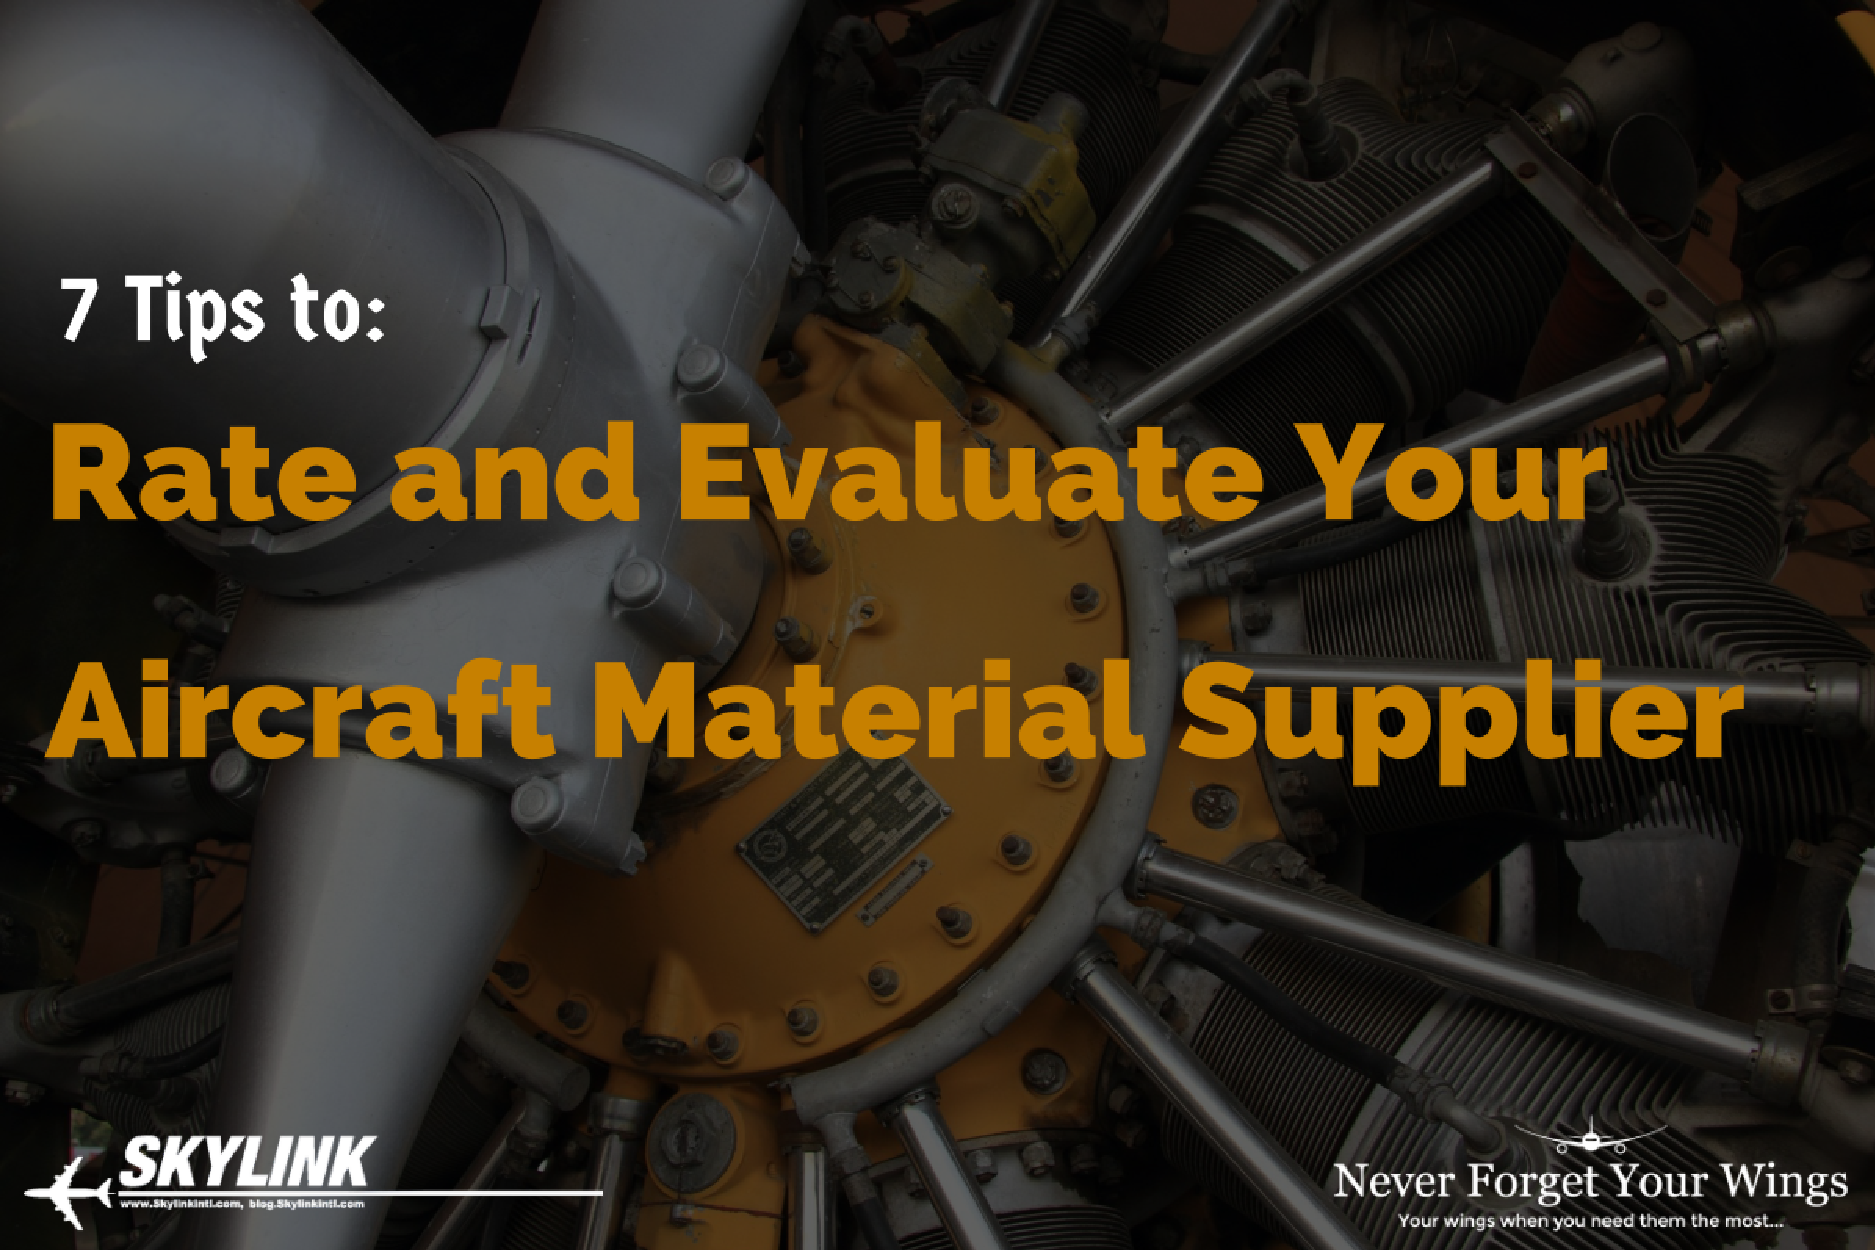 7 Tips To Rate and Evaluate Your Aircraft Material Supplier